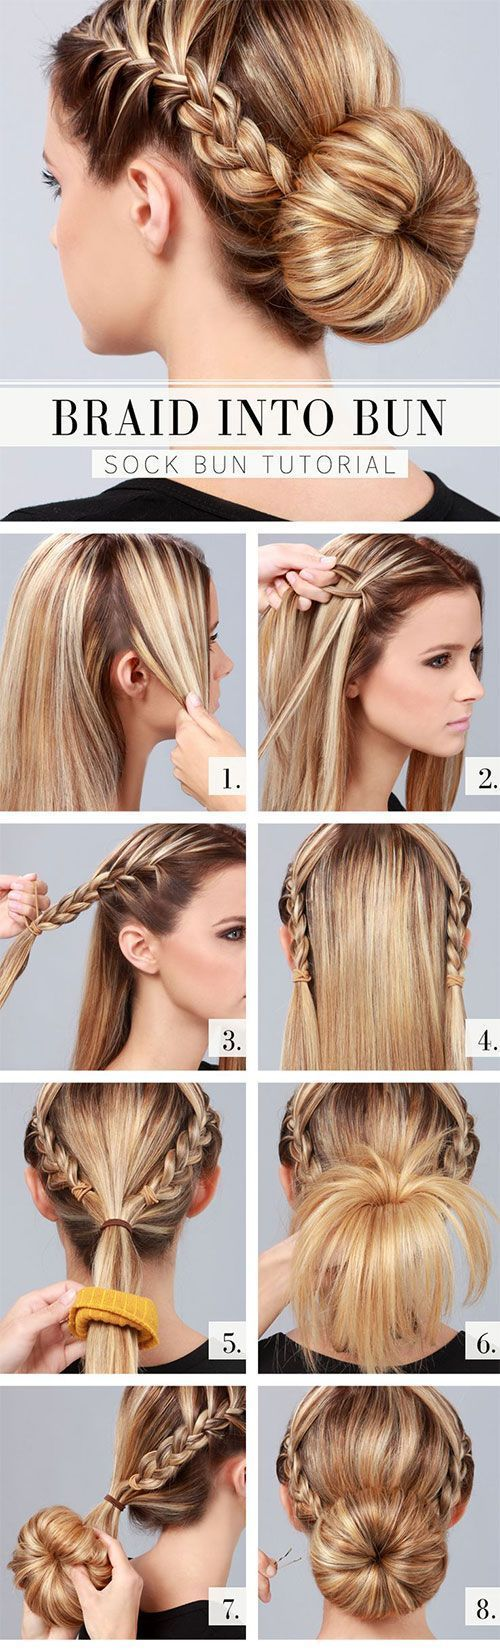 20 Easy Step By Step Summer Braids Style Tutorials For ...